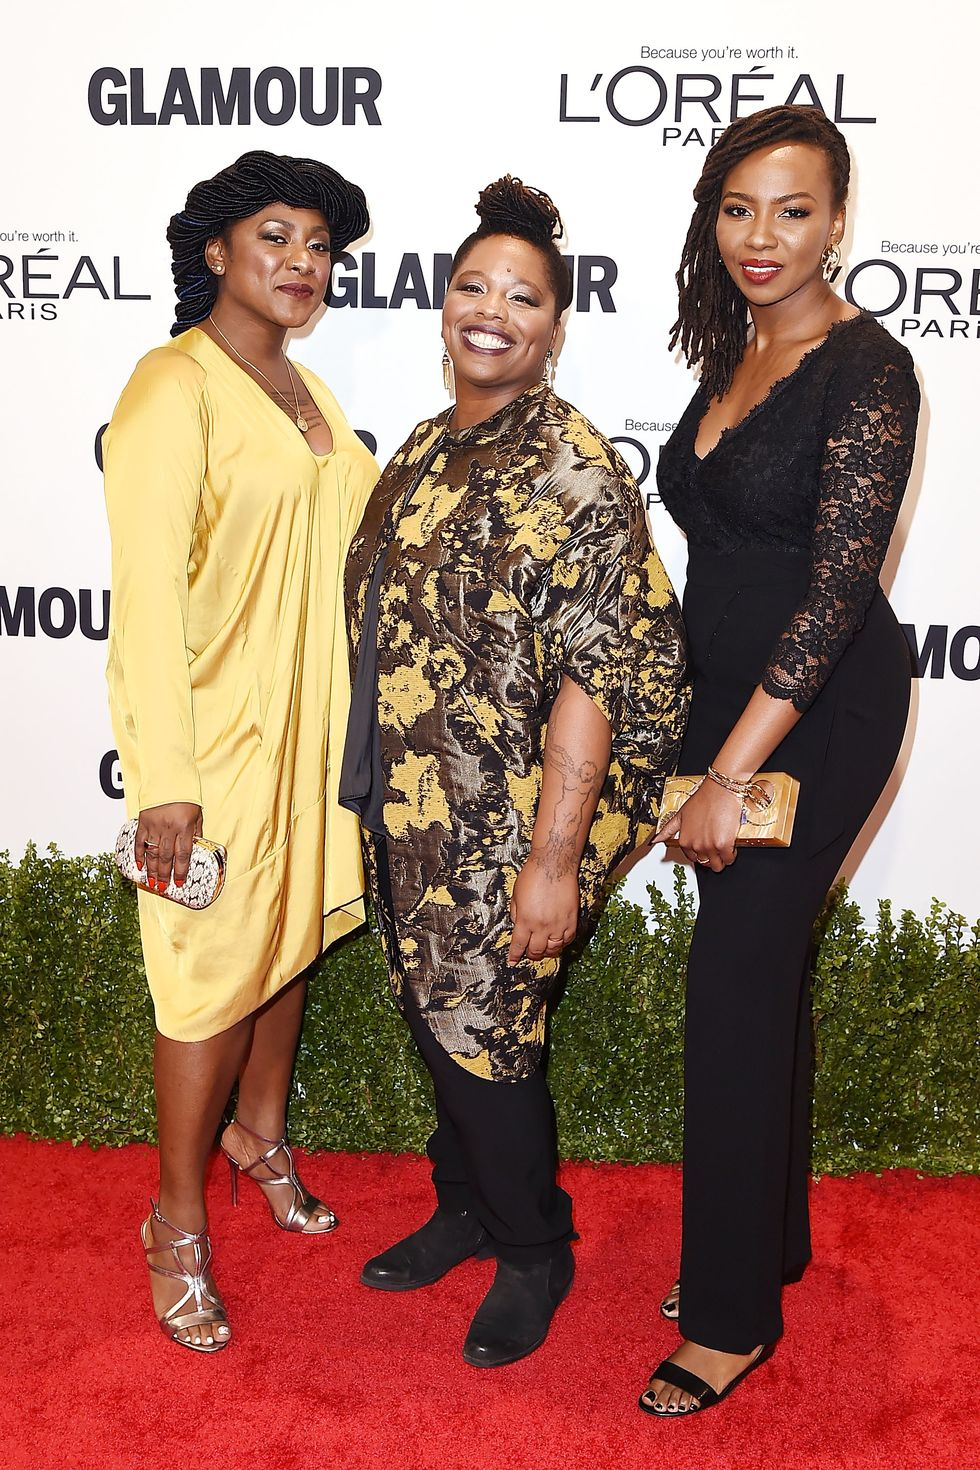 https://hips.hearstapps.com/hmg-prod.s3.amazonaws.com/images/alicia-garza-patrisse-cullors-and-opal-tometi-attend-the-news-photo-1610572626.?crop=1xw:1xh;center,top&resize=980:*